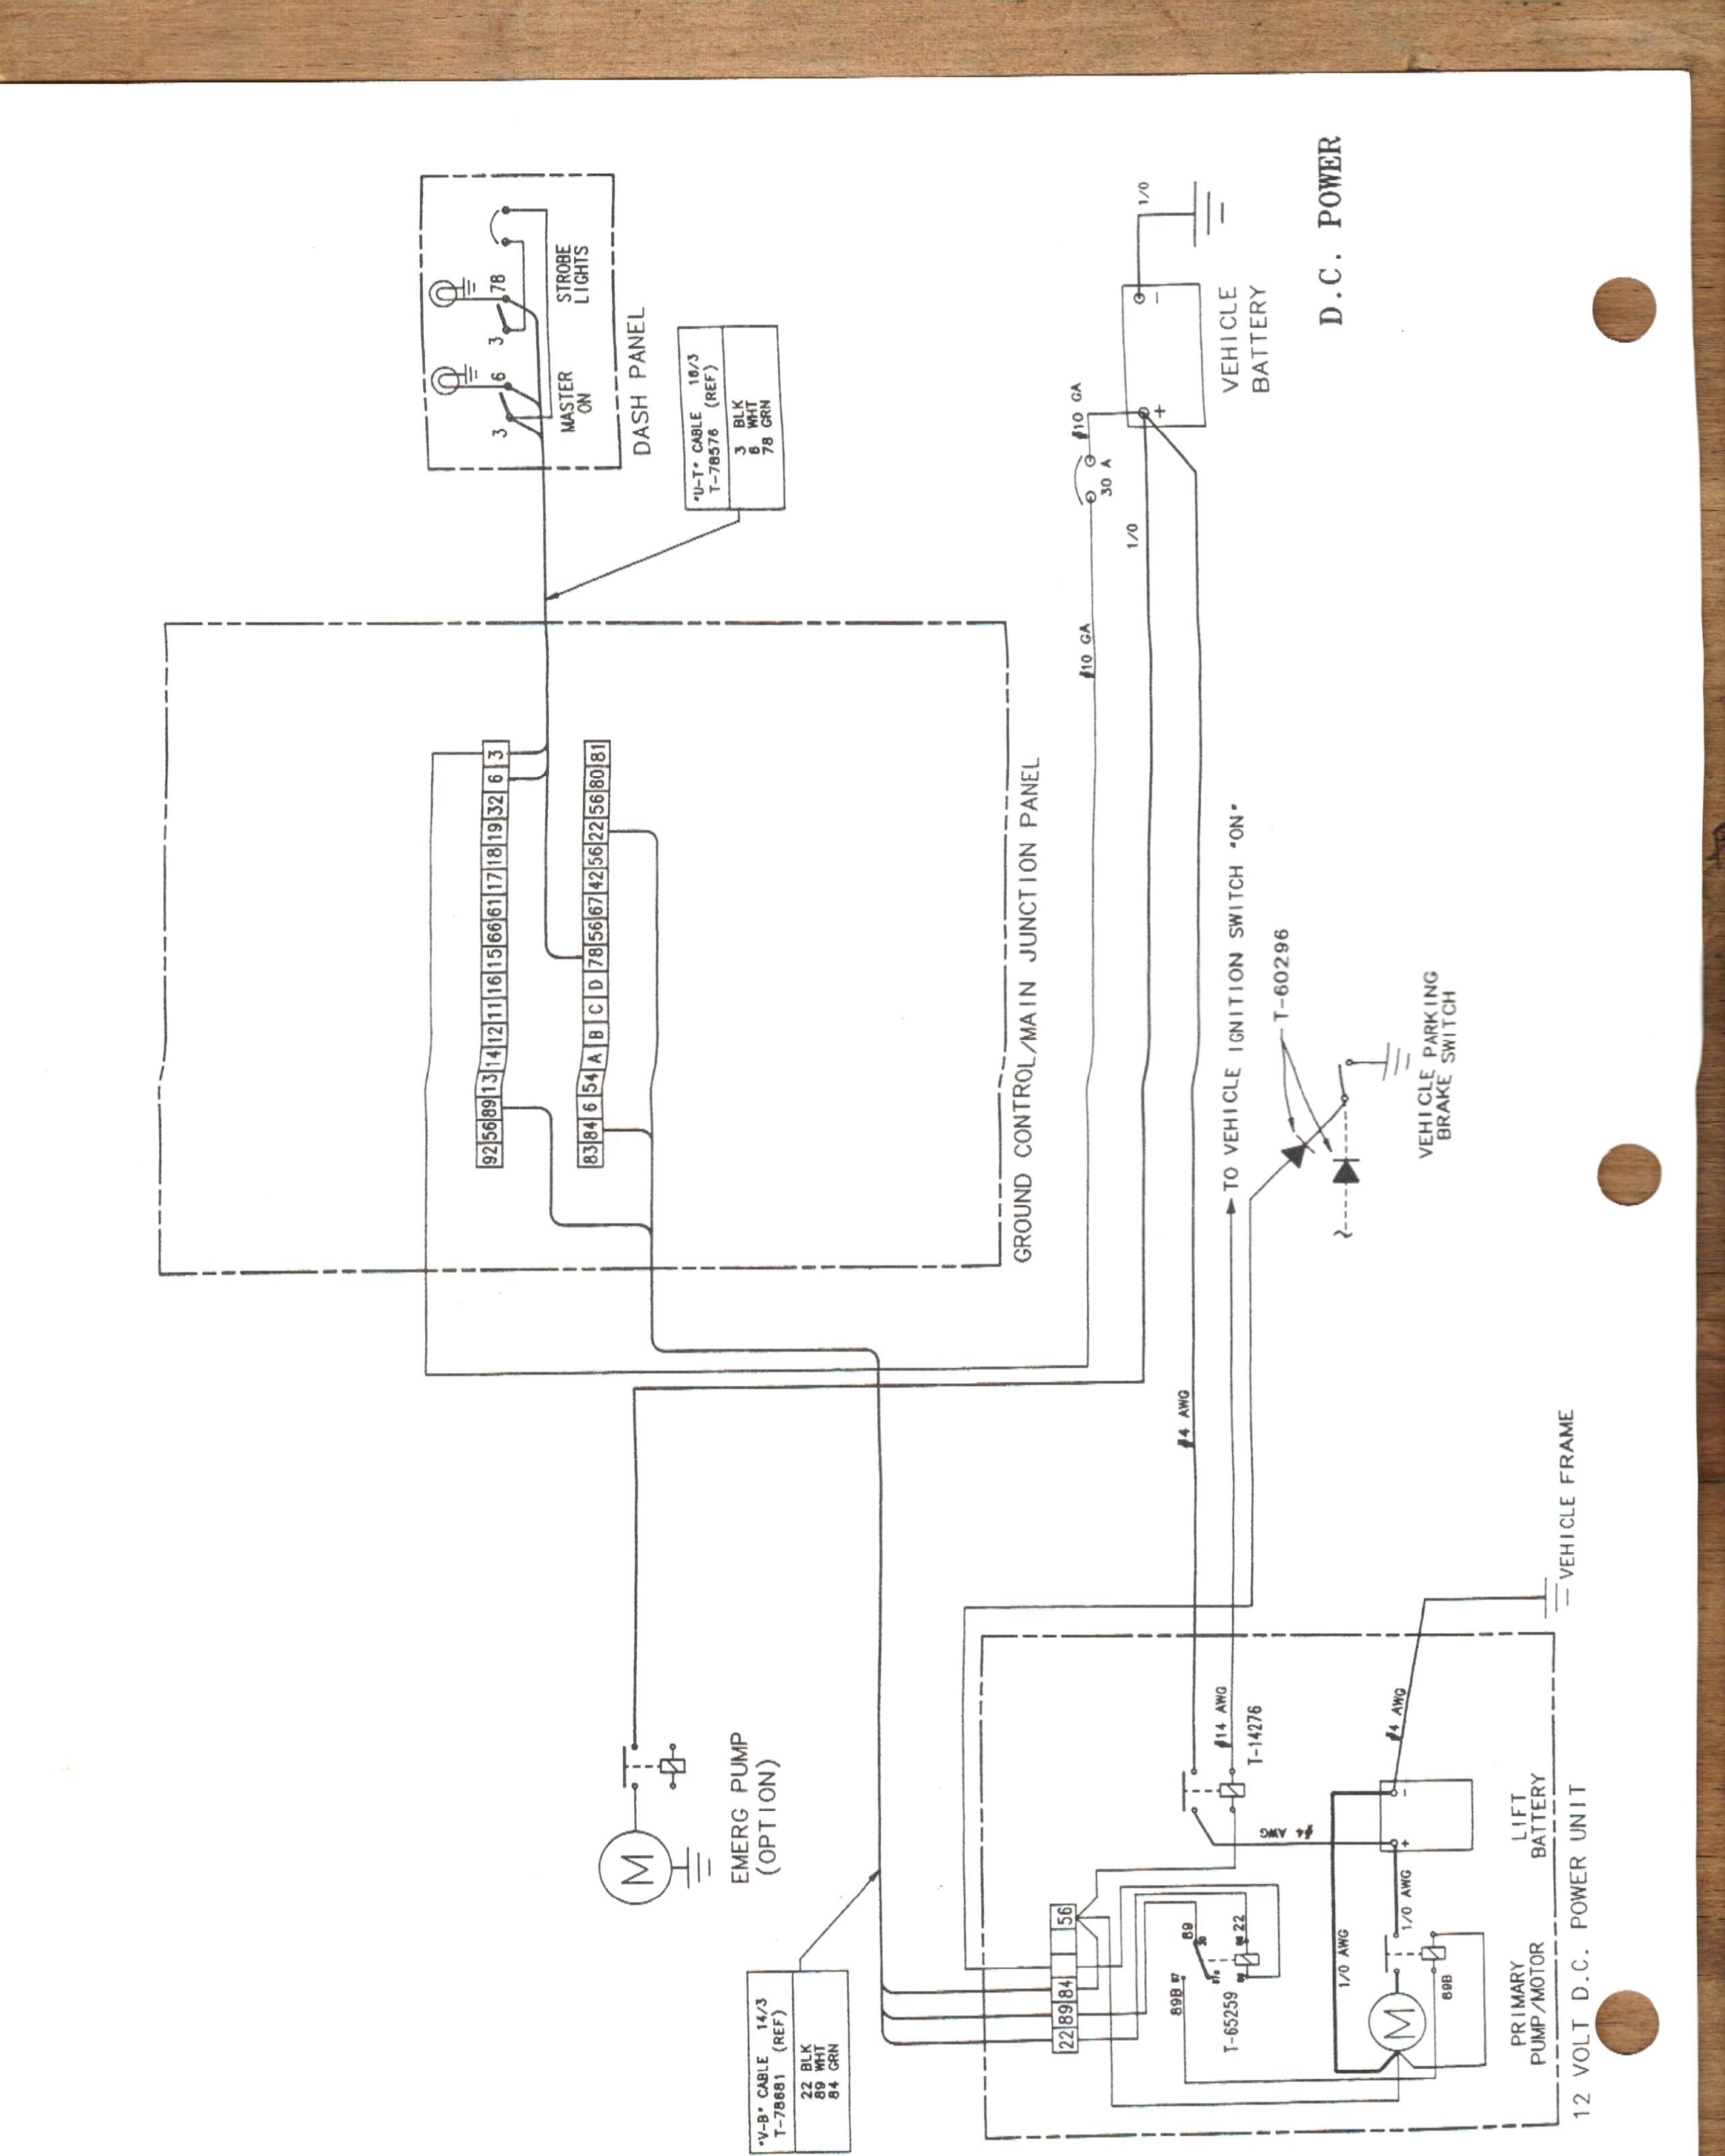 Telsta Wiring Diagram List Of Schematic Circuit Boom Truck 28c Trusted Diagrams Rh Kroud Co T40c